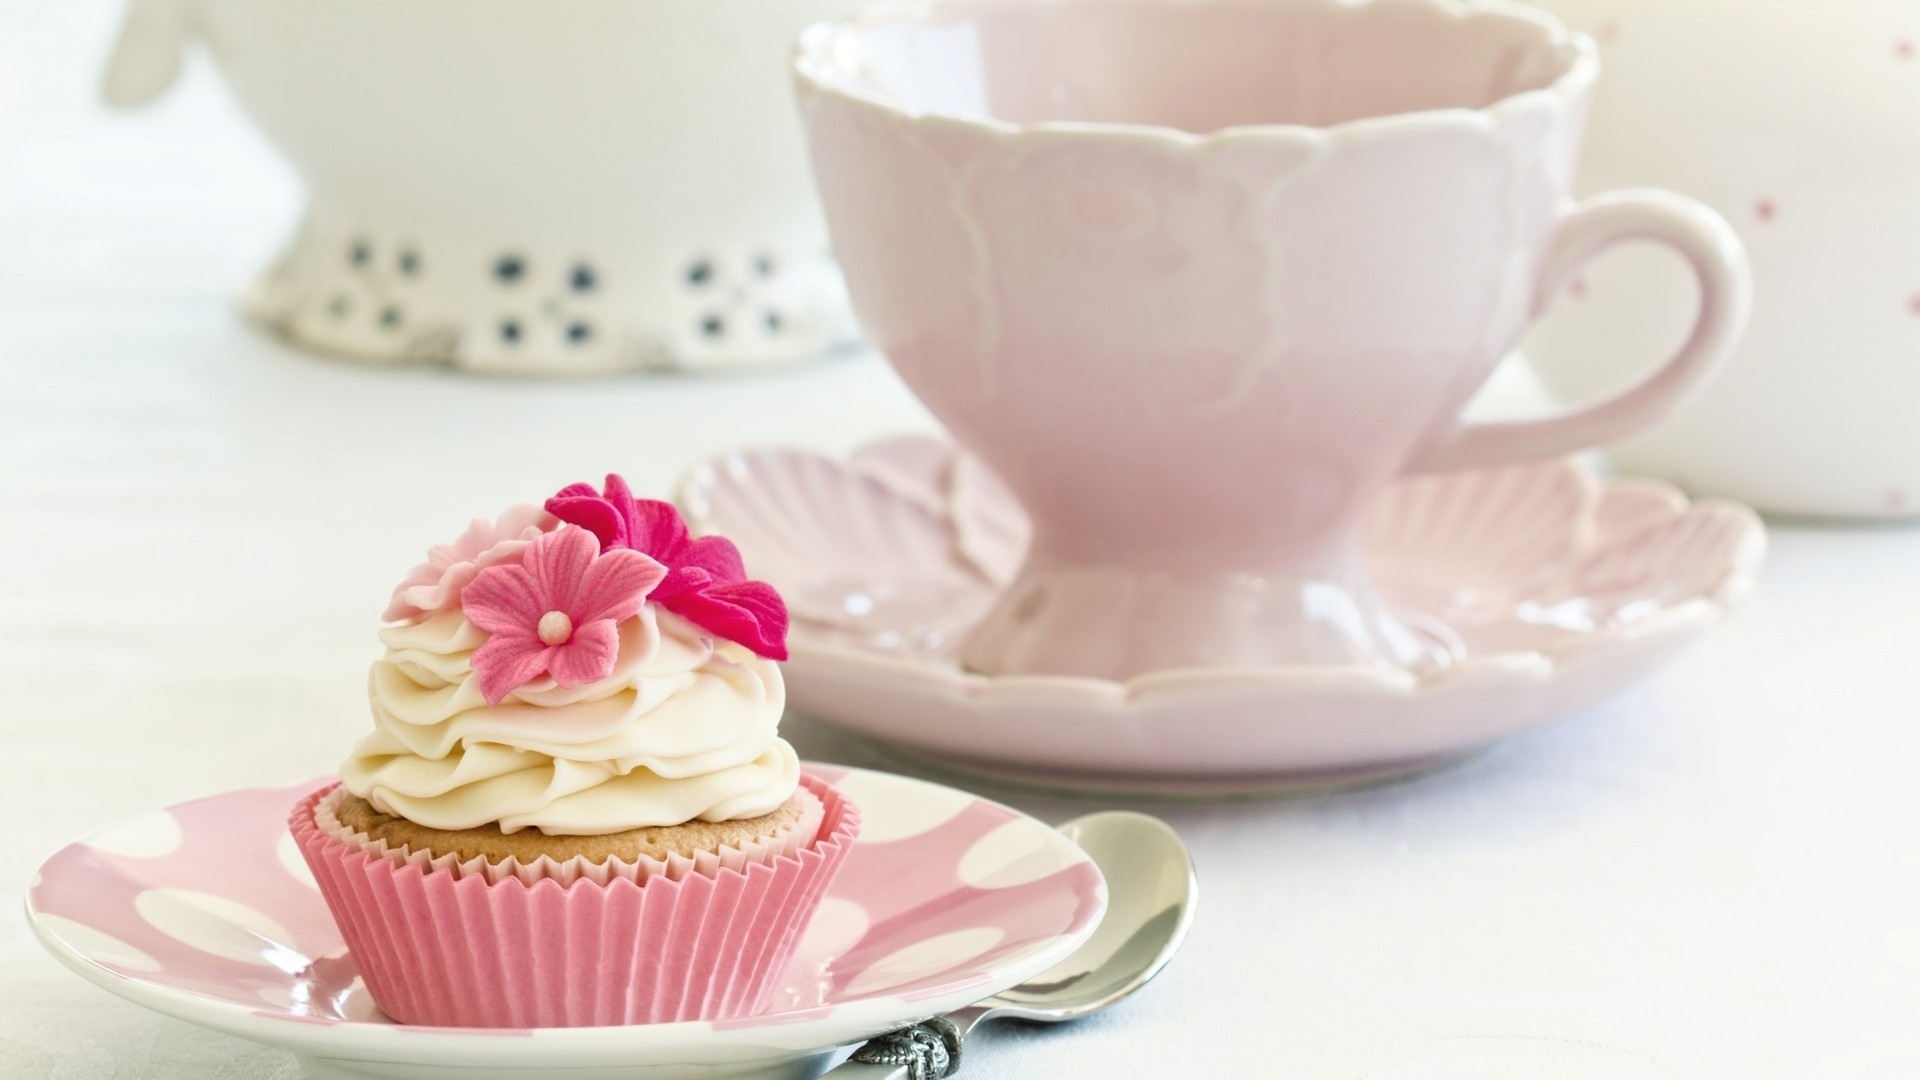 Res: 1920x1080, Cake cupcake cream white flowers pink food dessert sweet dishes wallpaper |   | 166343 |